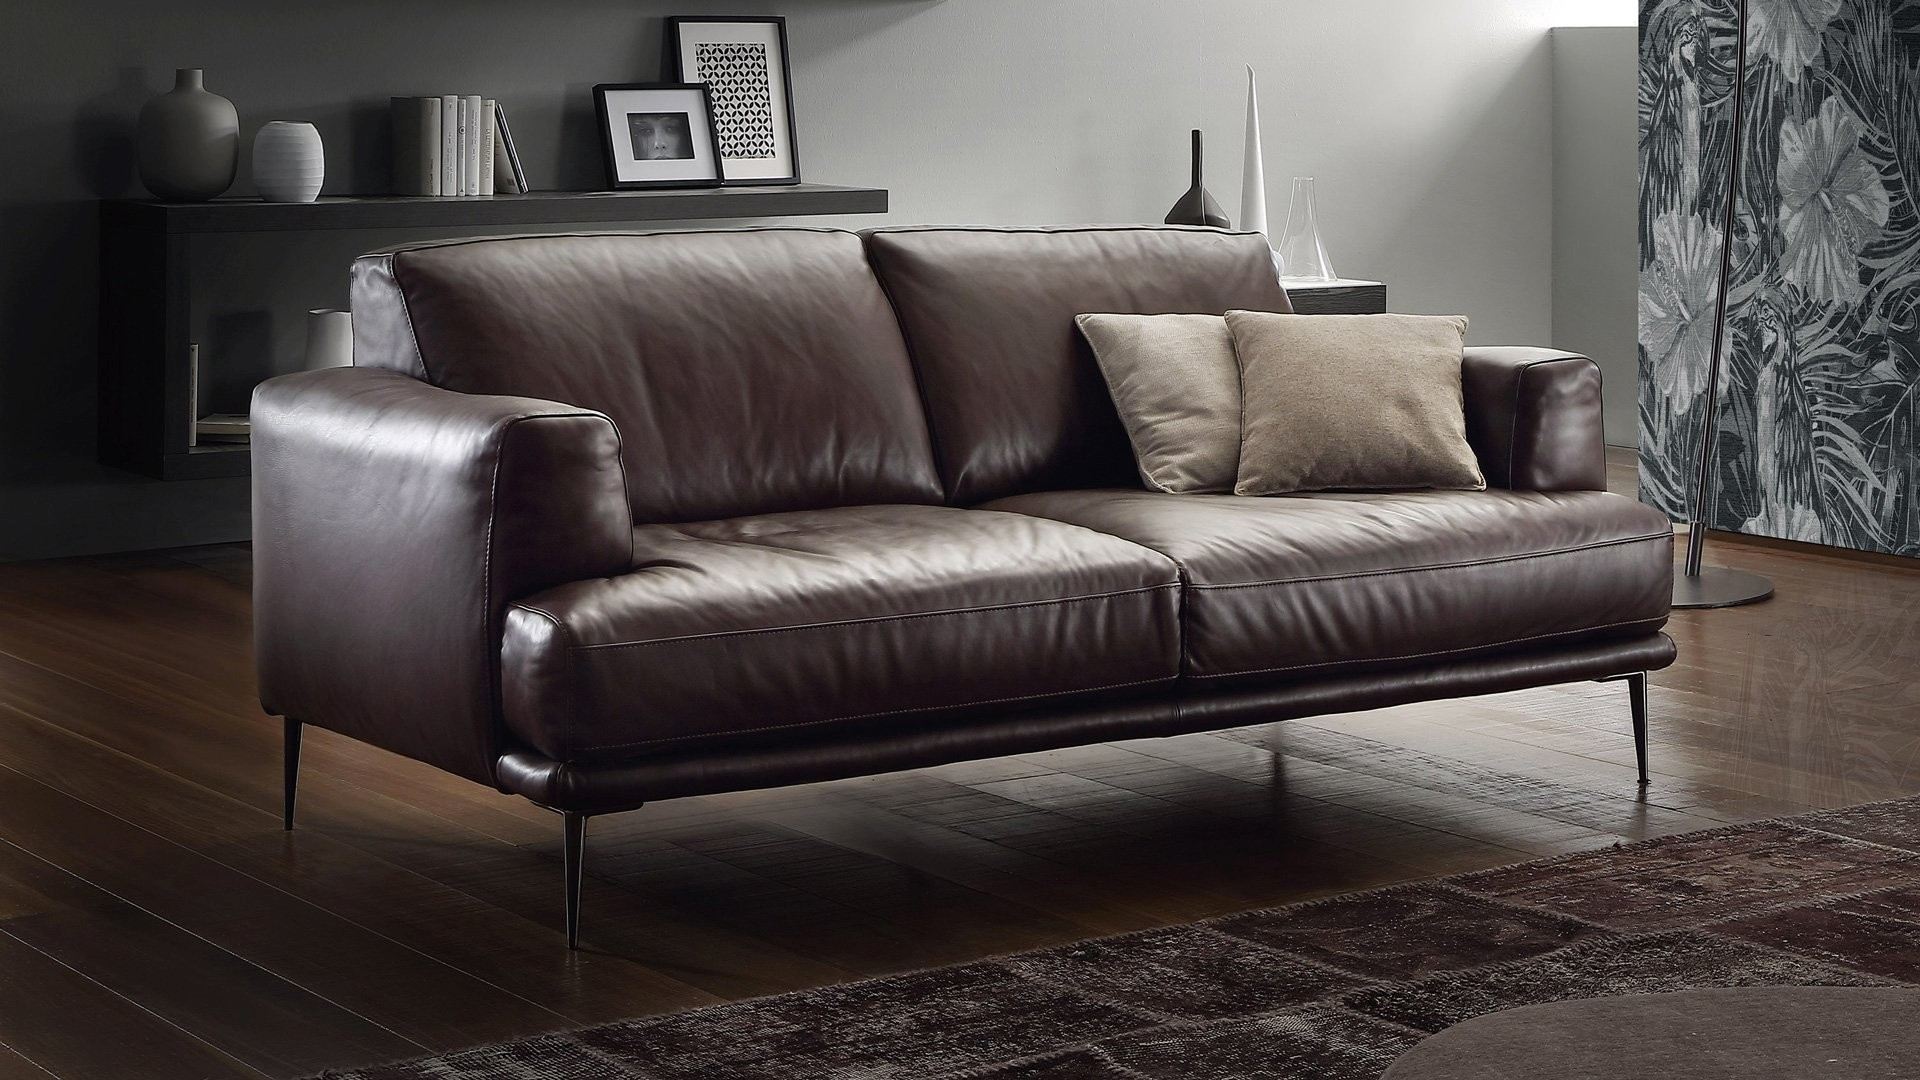 ... Chateau D Ax Sofa Best Of Home Gallery